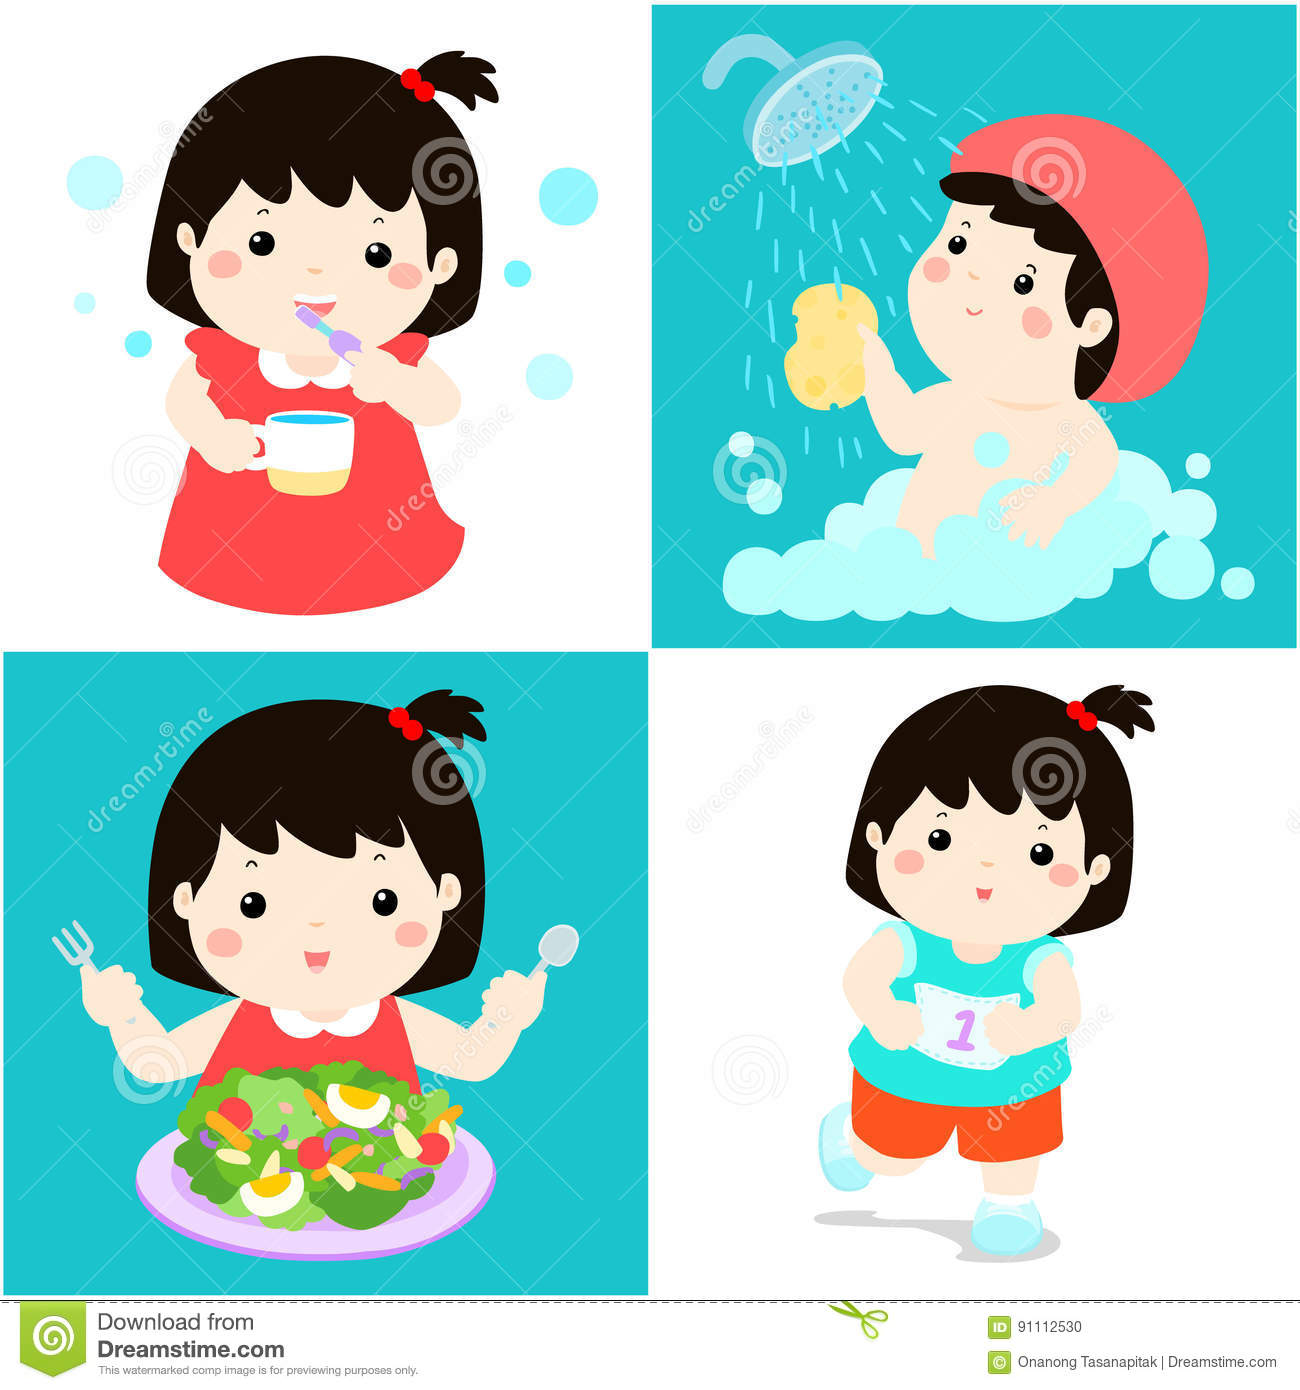 Daily Healthy Routine For Girl Cartoon Stock Vector -6655